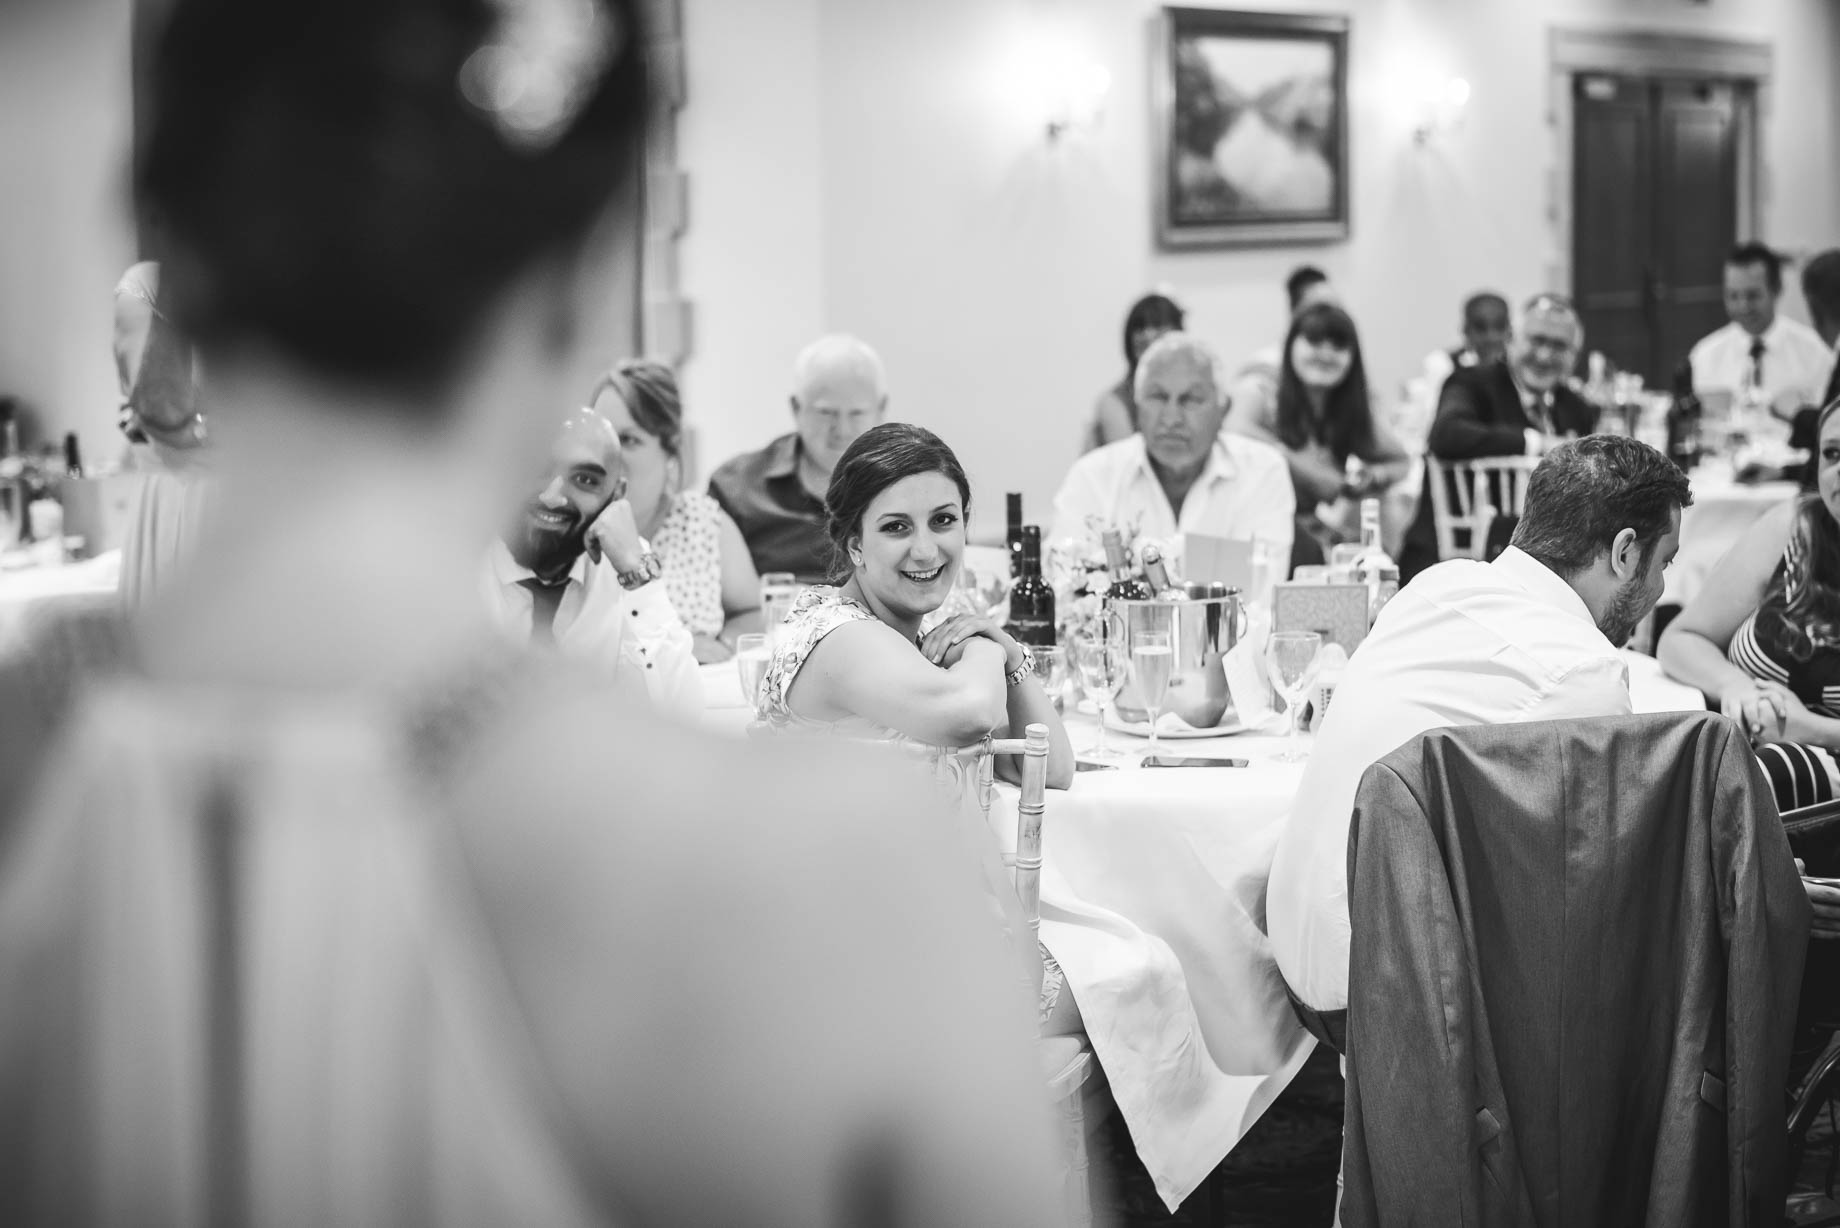 Luton Hoo wedding photography by Guy Collier Photography - Lauren and Gem (141 of 178)